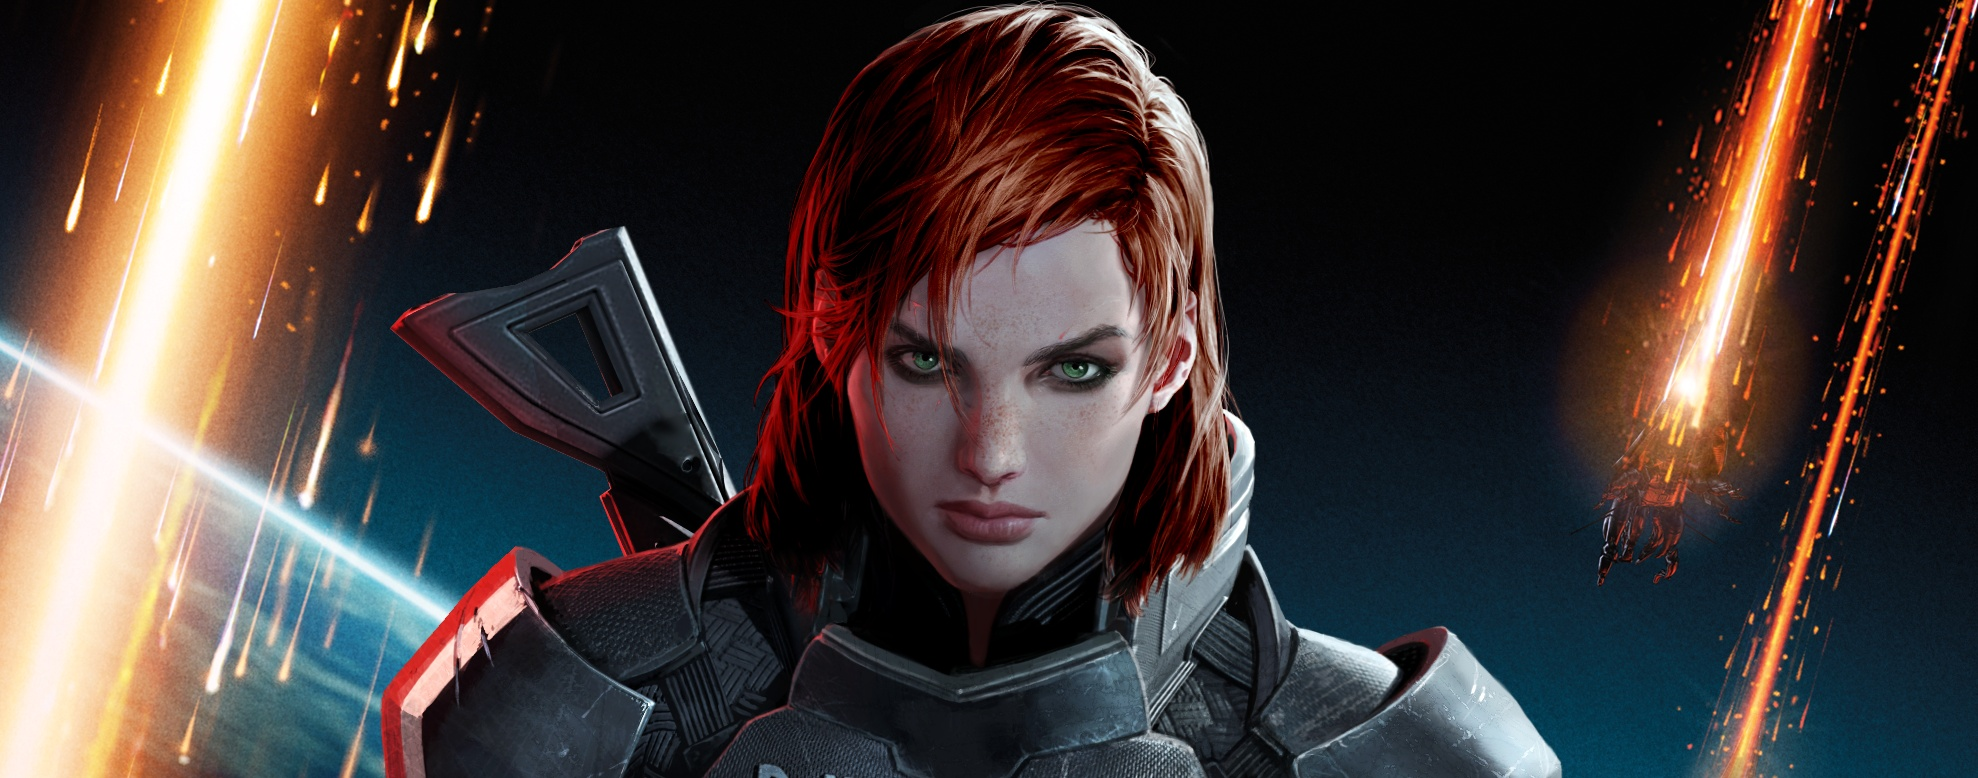 Mass Effect 3: this is female Shepard | PC Gamer